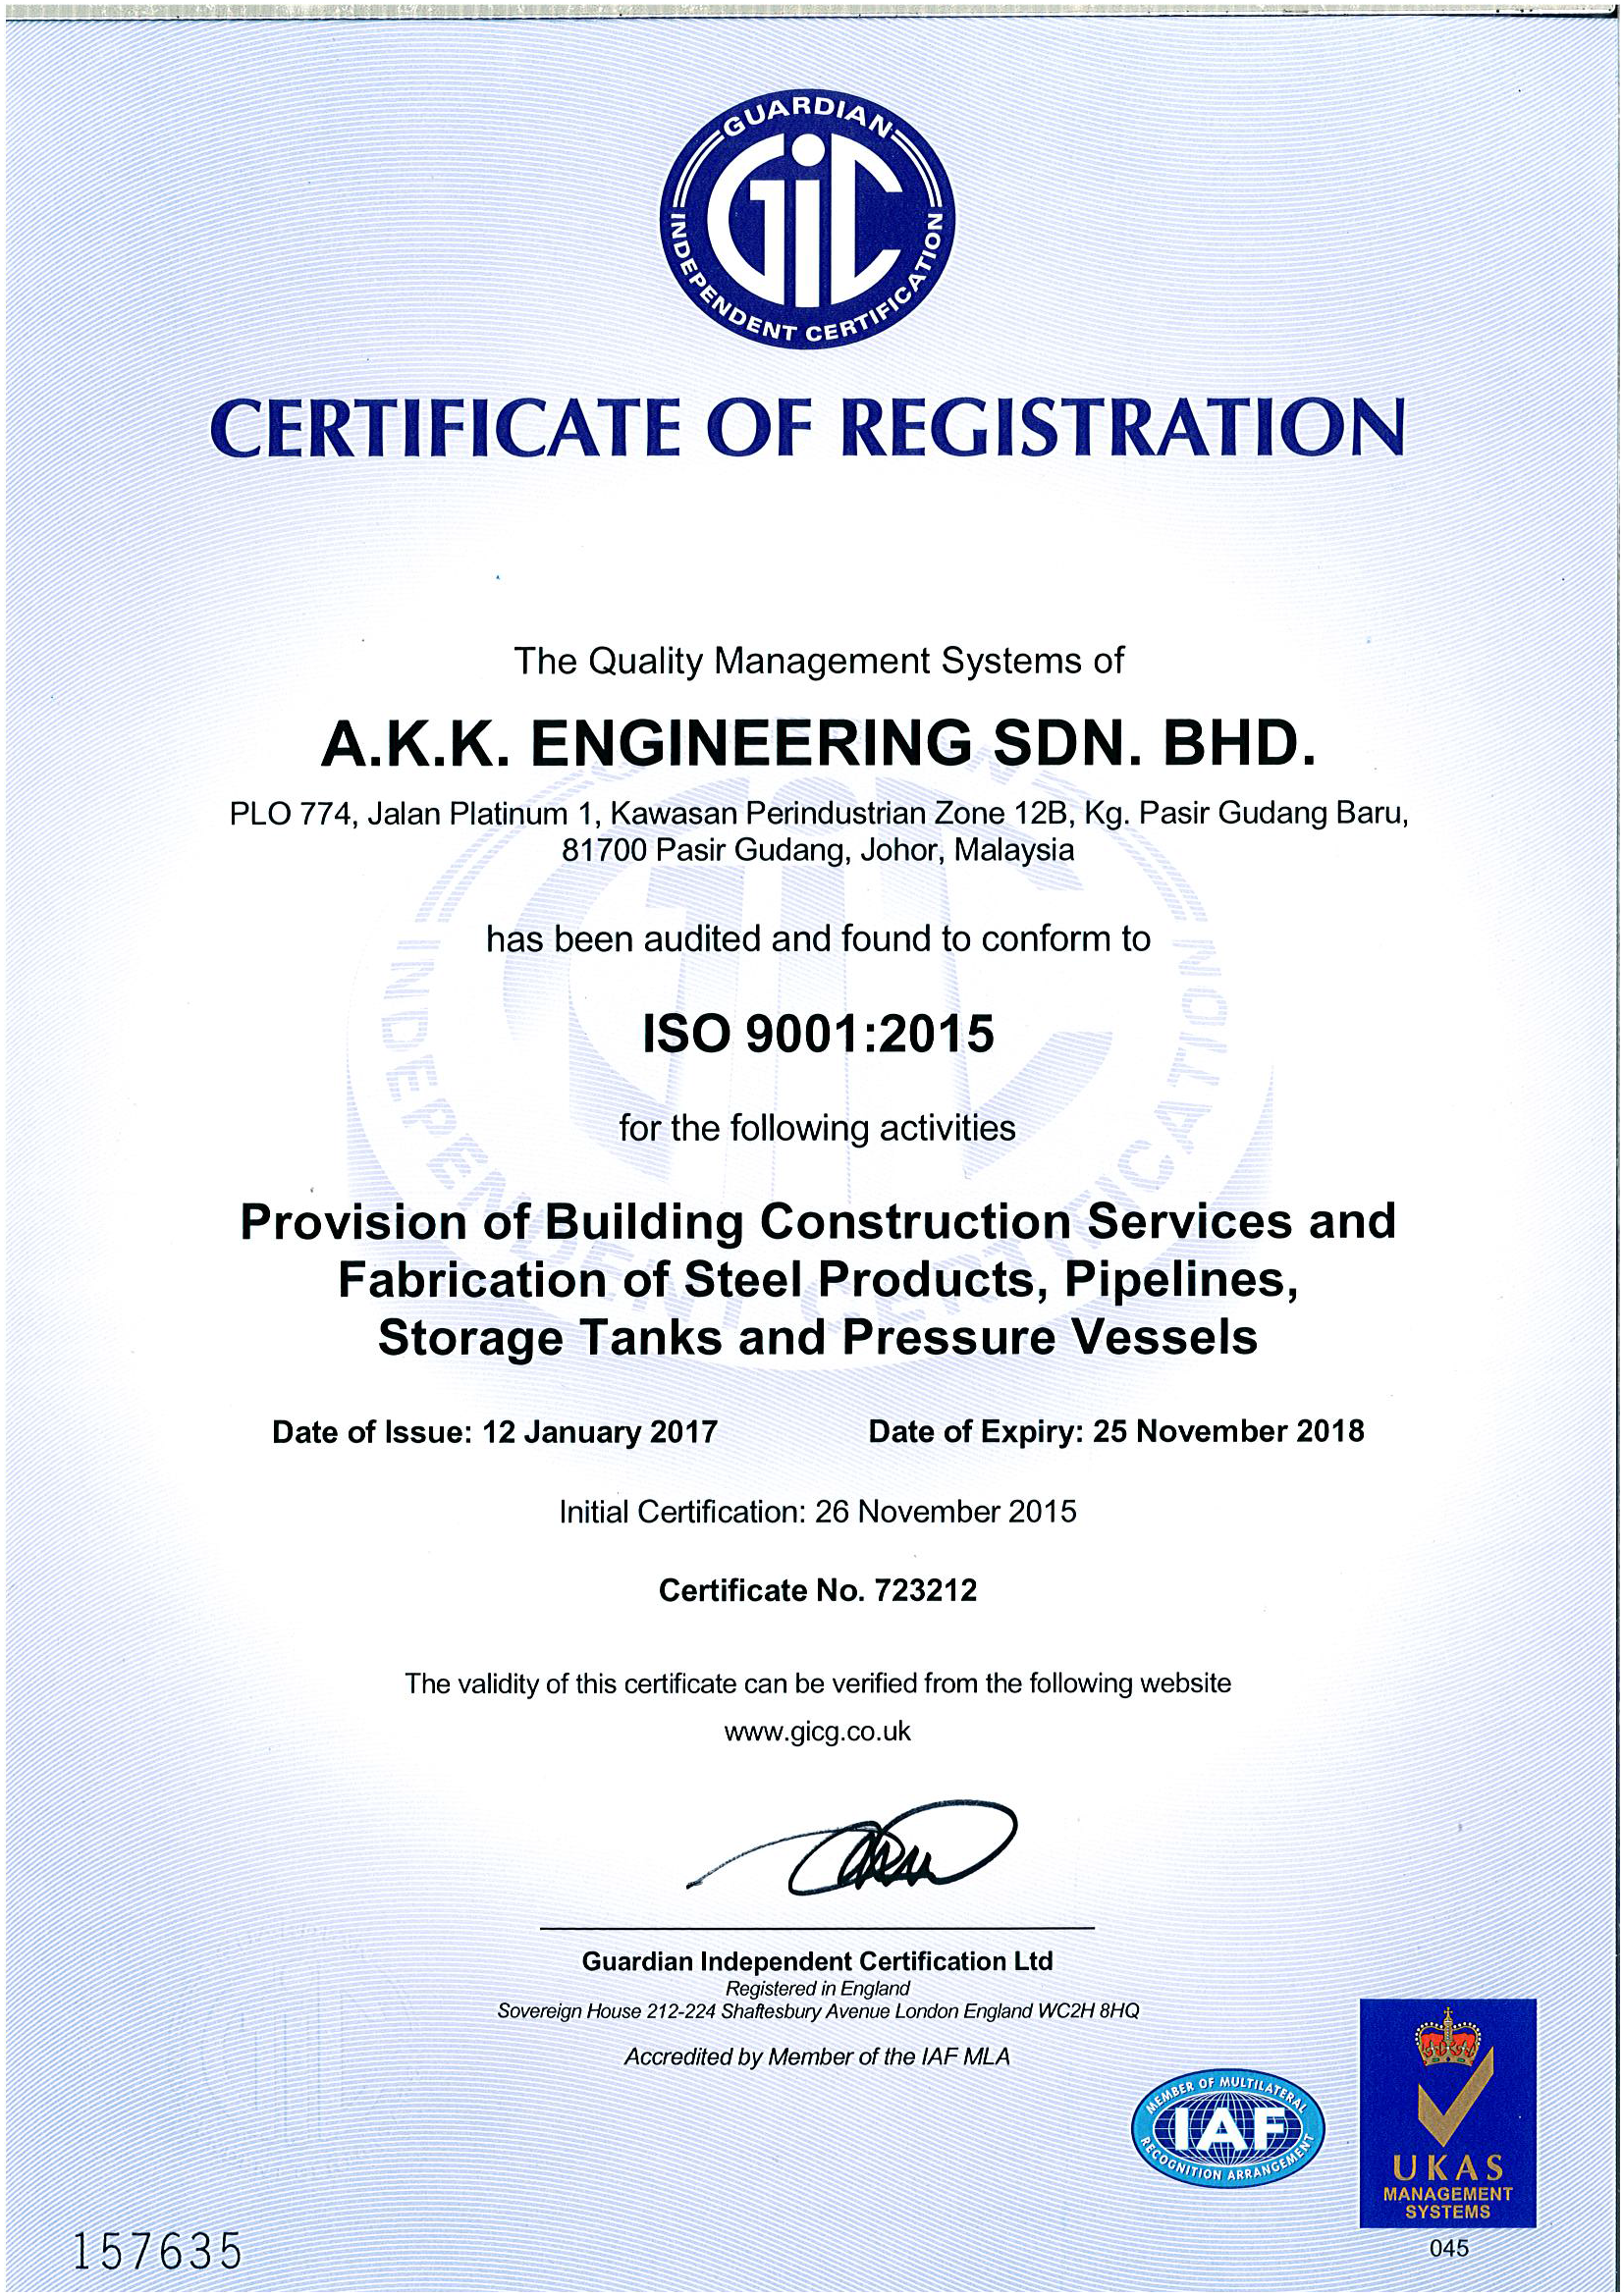 iso-9001-2015-akk-engineering